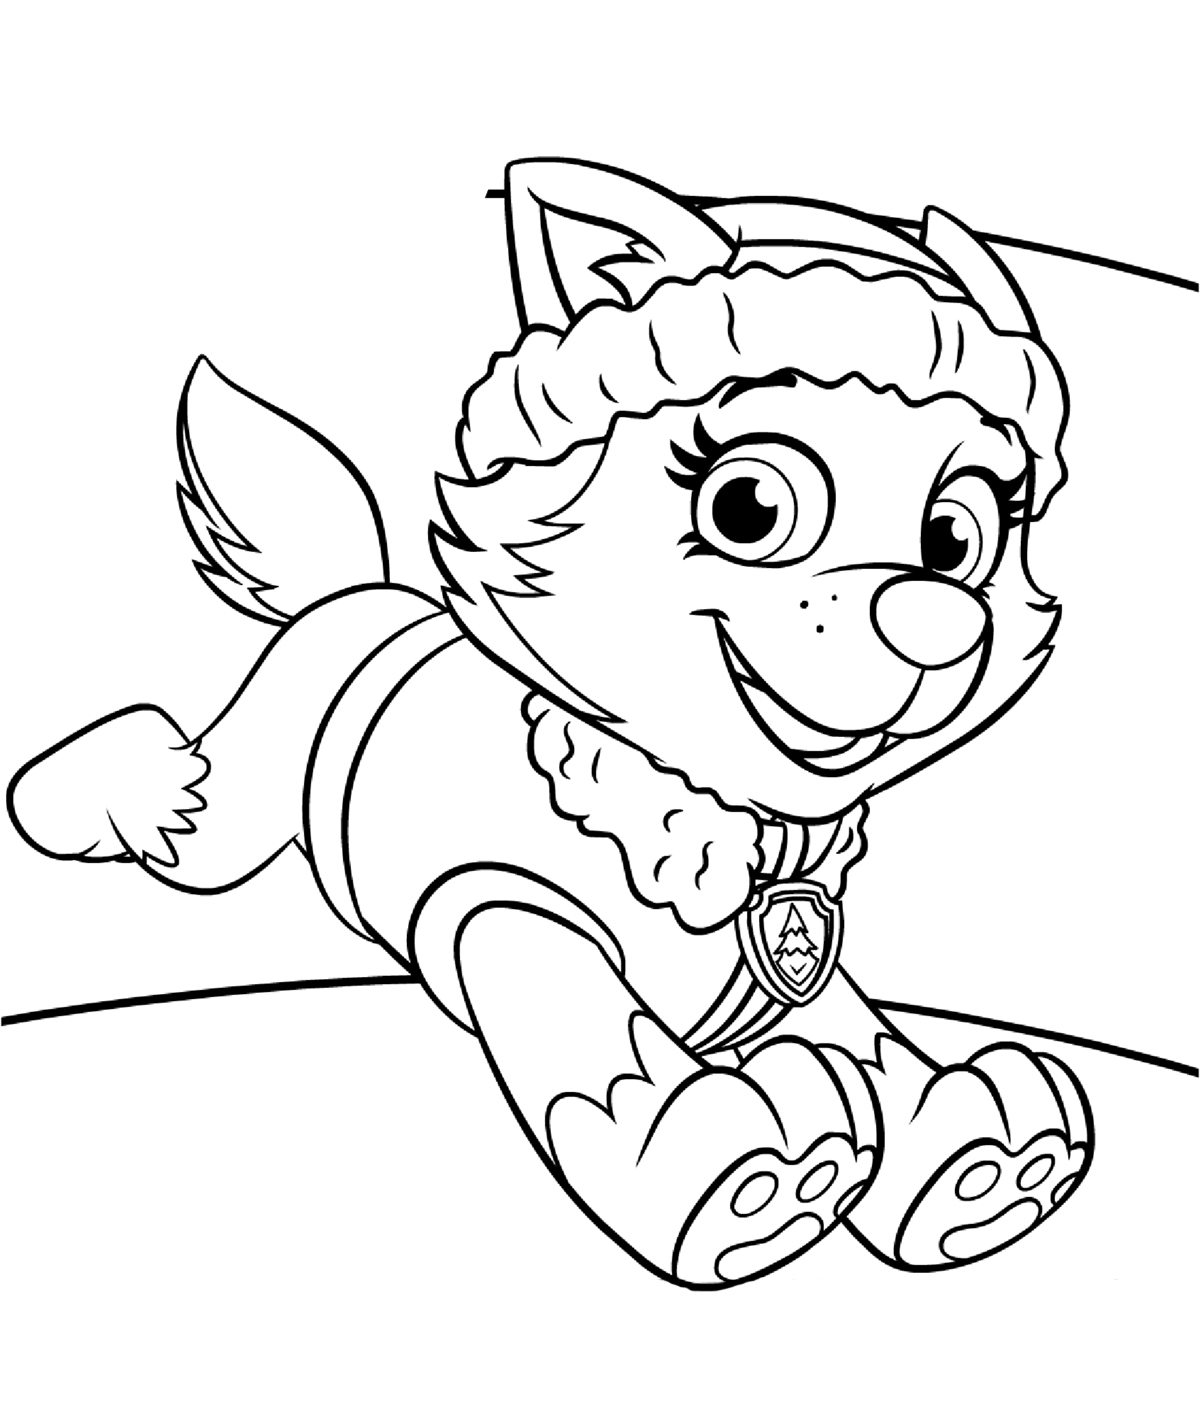 ryder coloring pages - paw patrol ryder coloring pages coloring pages